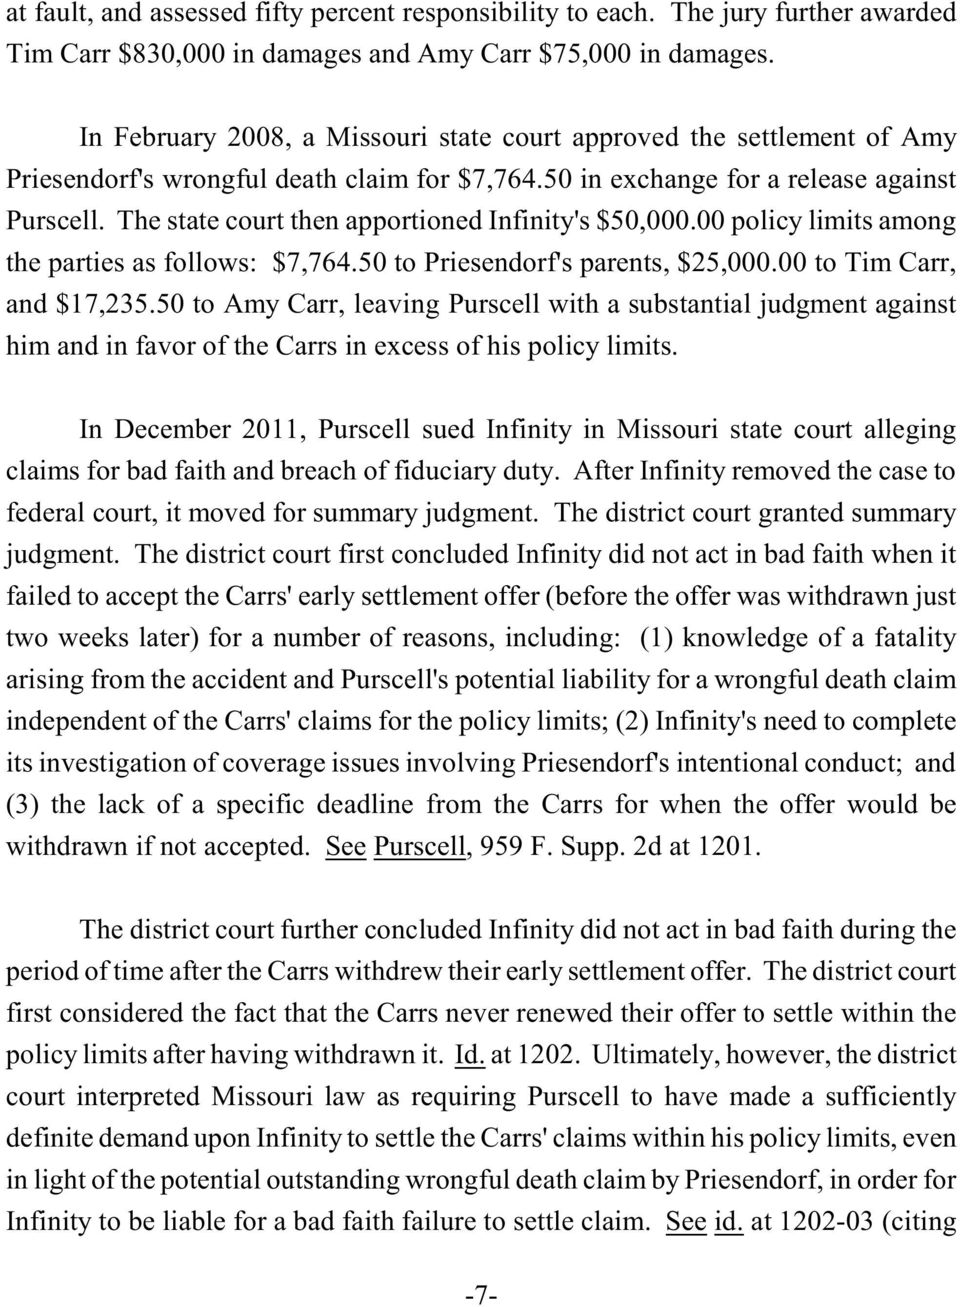 The state court then apportioned Infinity's $50,000.00 policy limits among the parties as follows: $7,764.50 to Priesendorf's parents, $25,000.00 to Tim Carr, and $17,235.